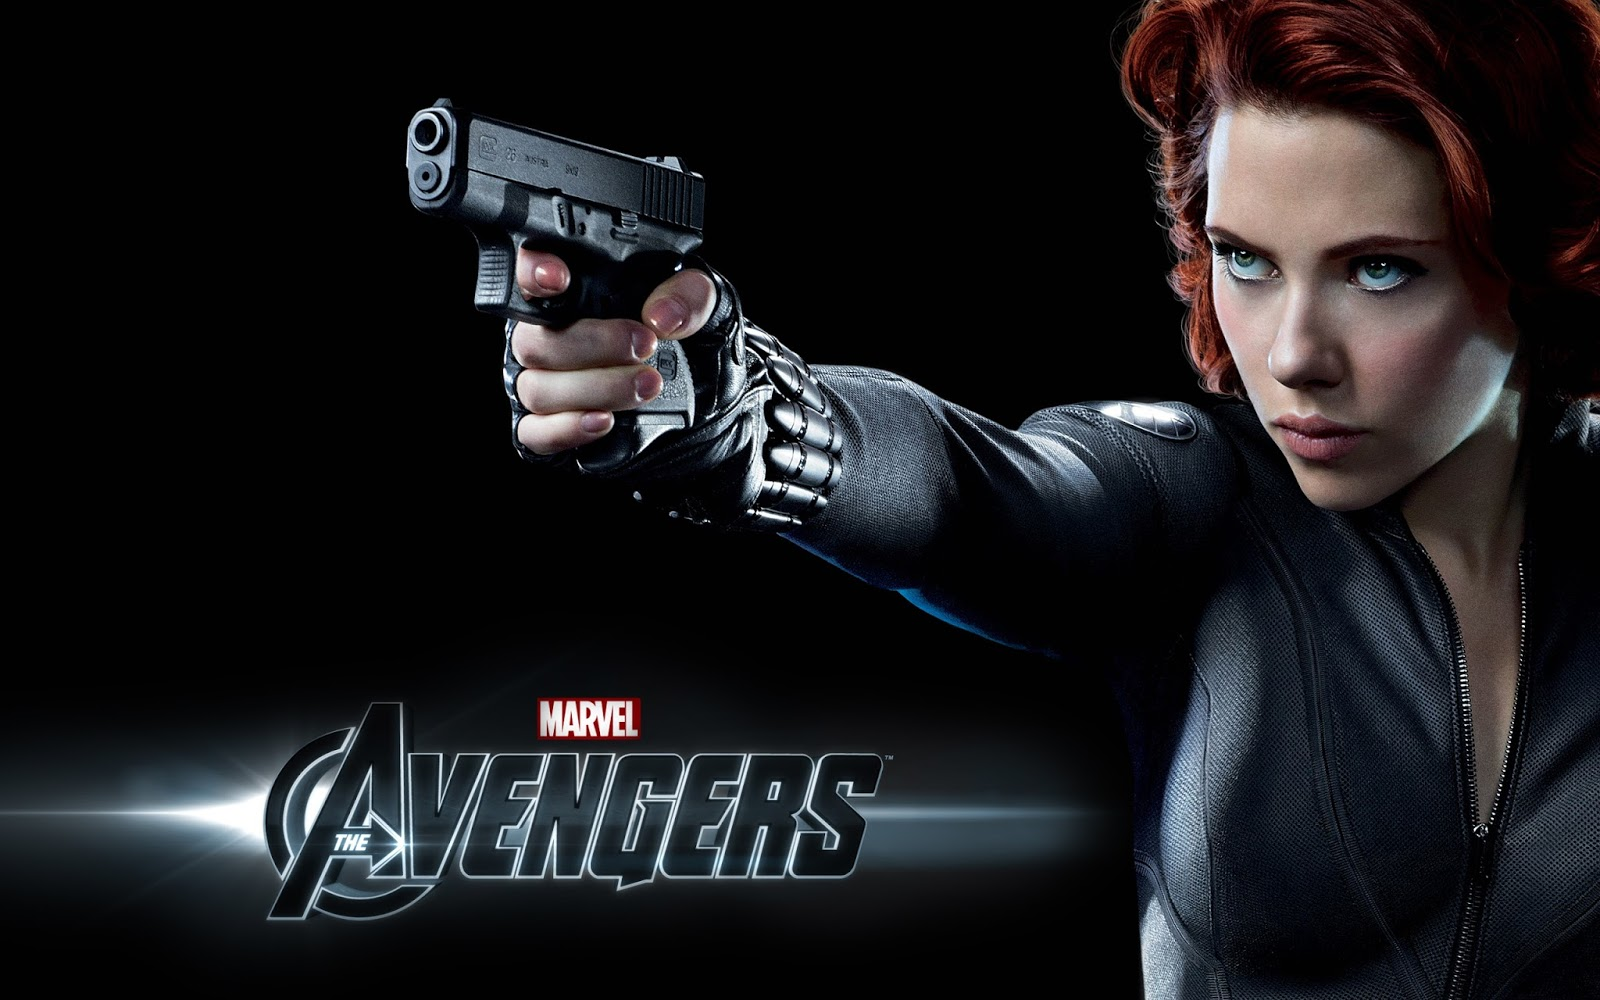 Scarlett Johansson in the Movie Avengers Wallpaper